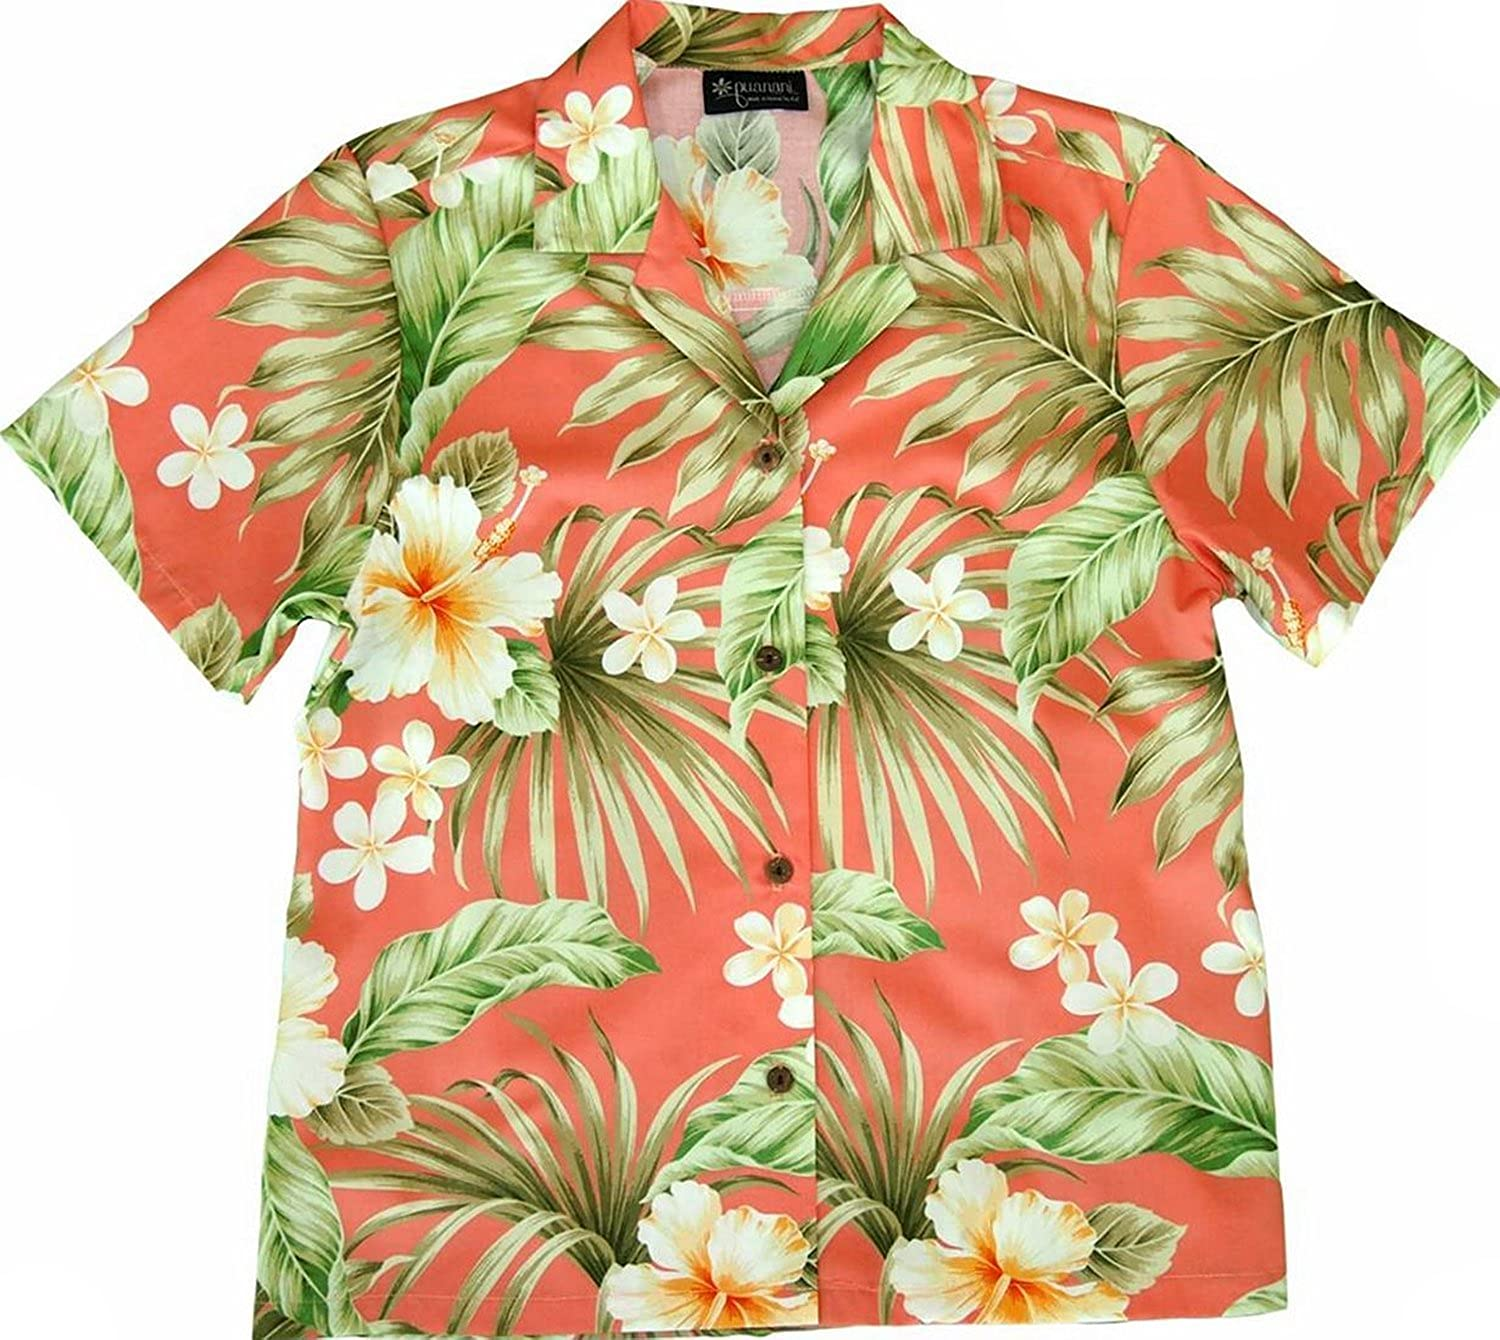 Gifts Online limited product RJC Women Full Bloom Shirt Camp Tropical